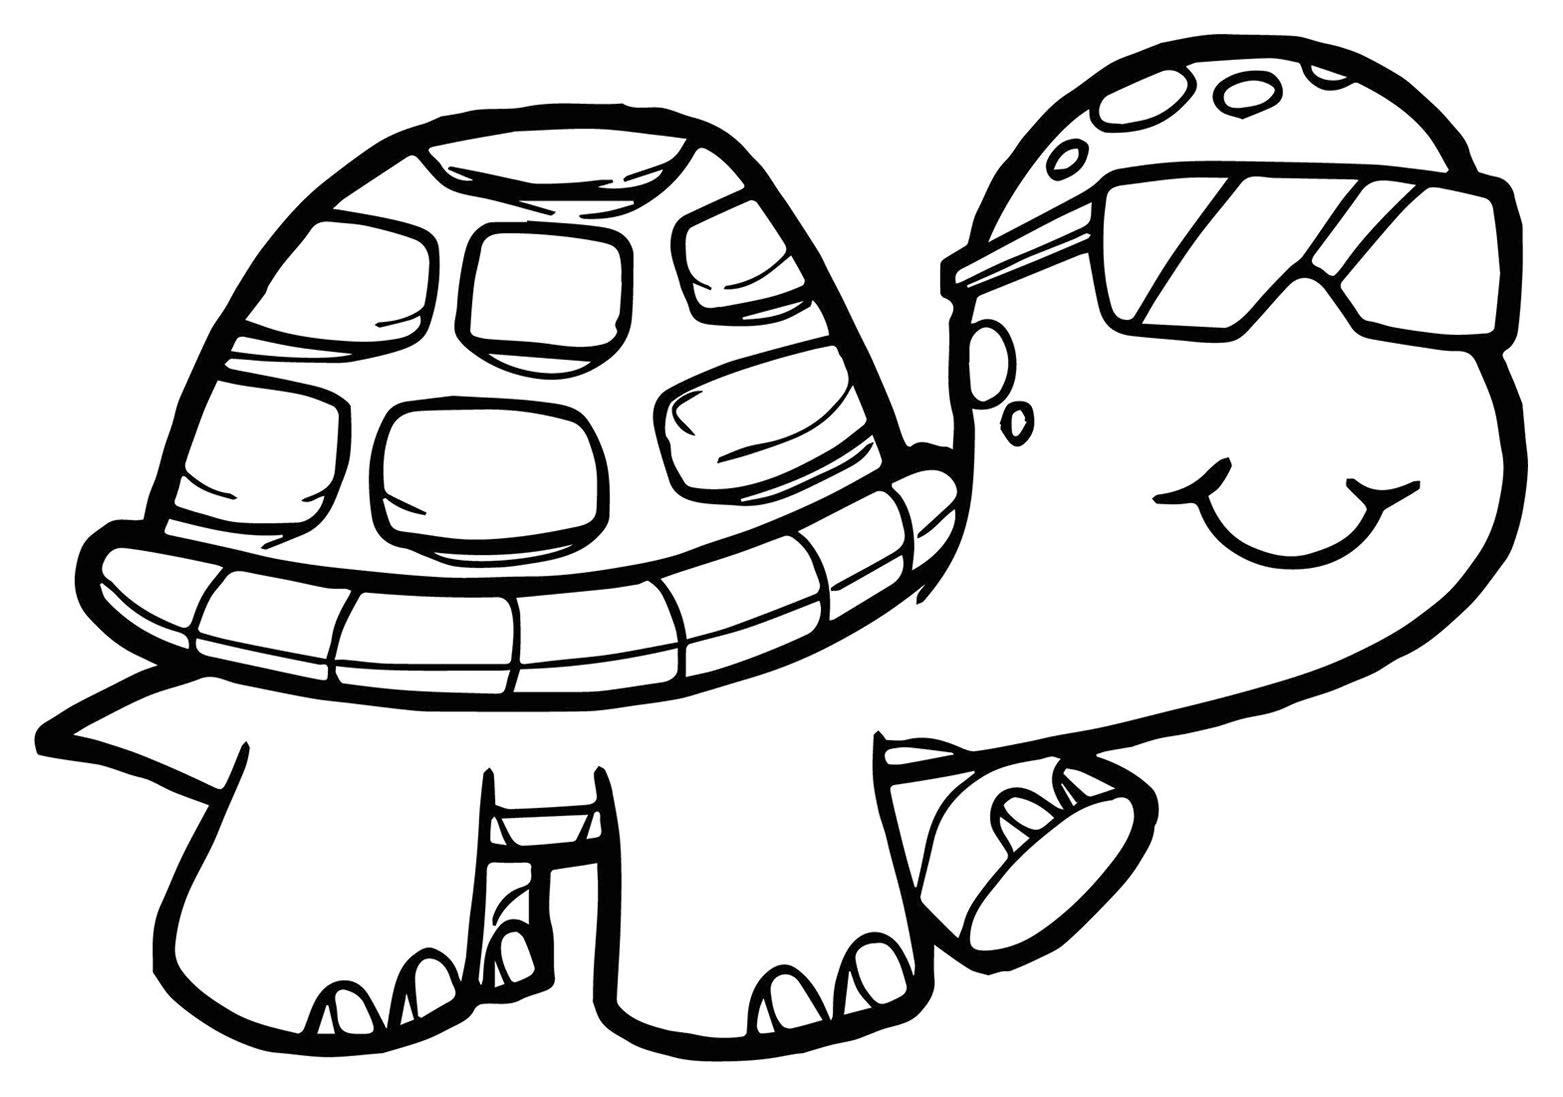 turtle pictures for coloring turtle coloring pages getcoloringpagescom coloring turtle pictures for